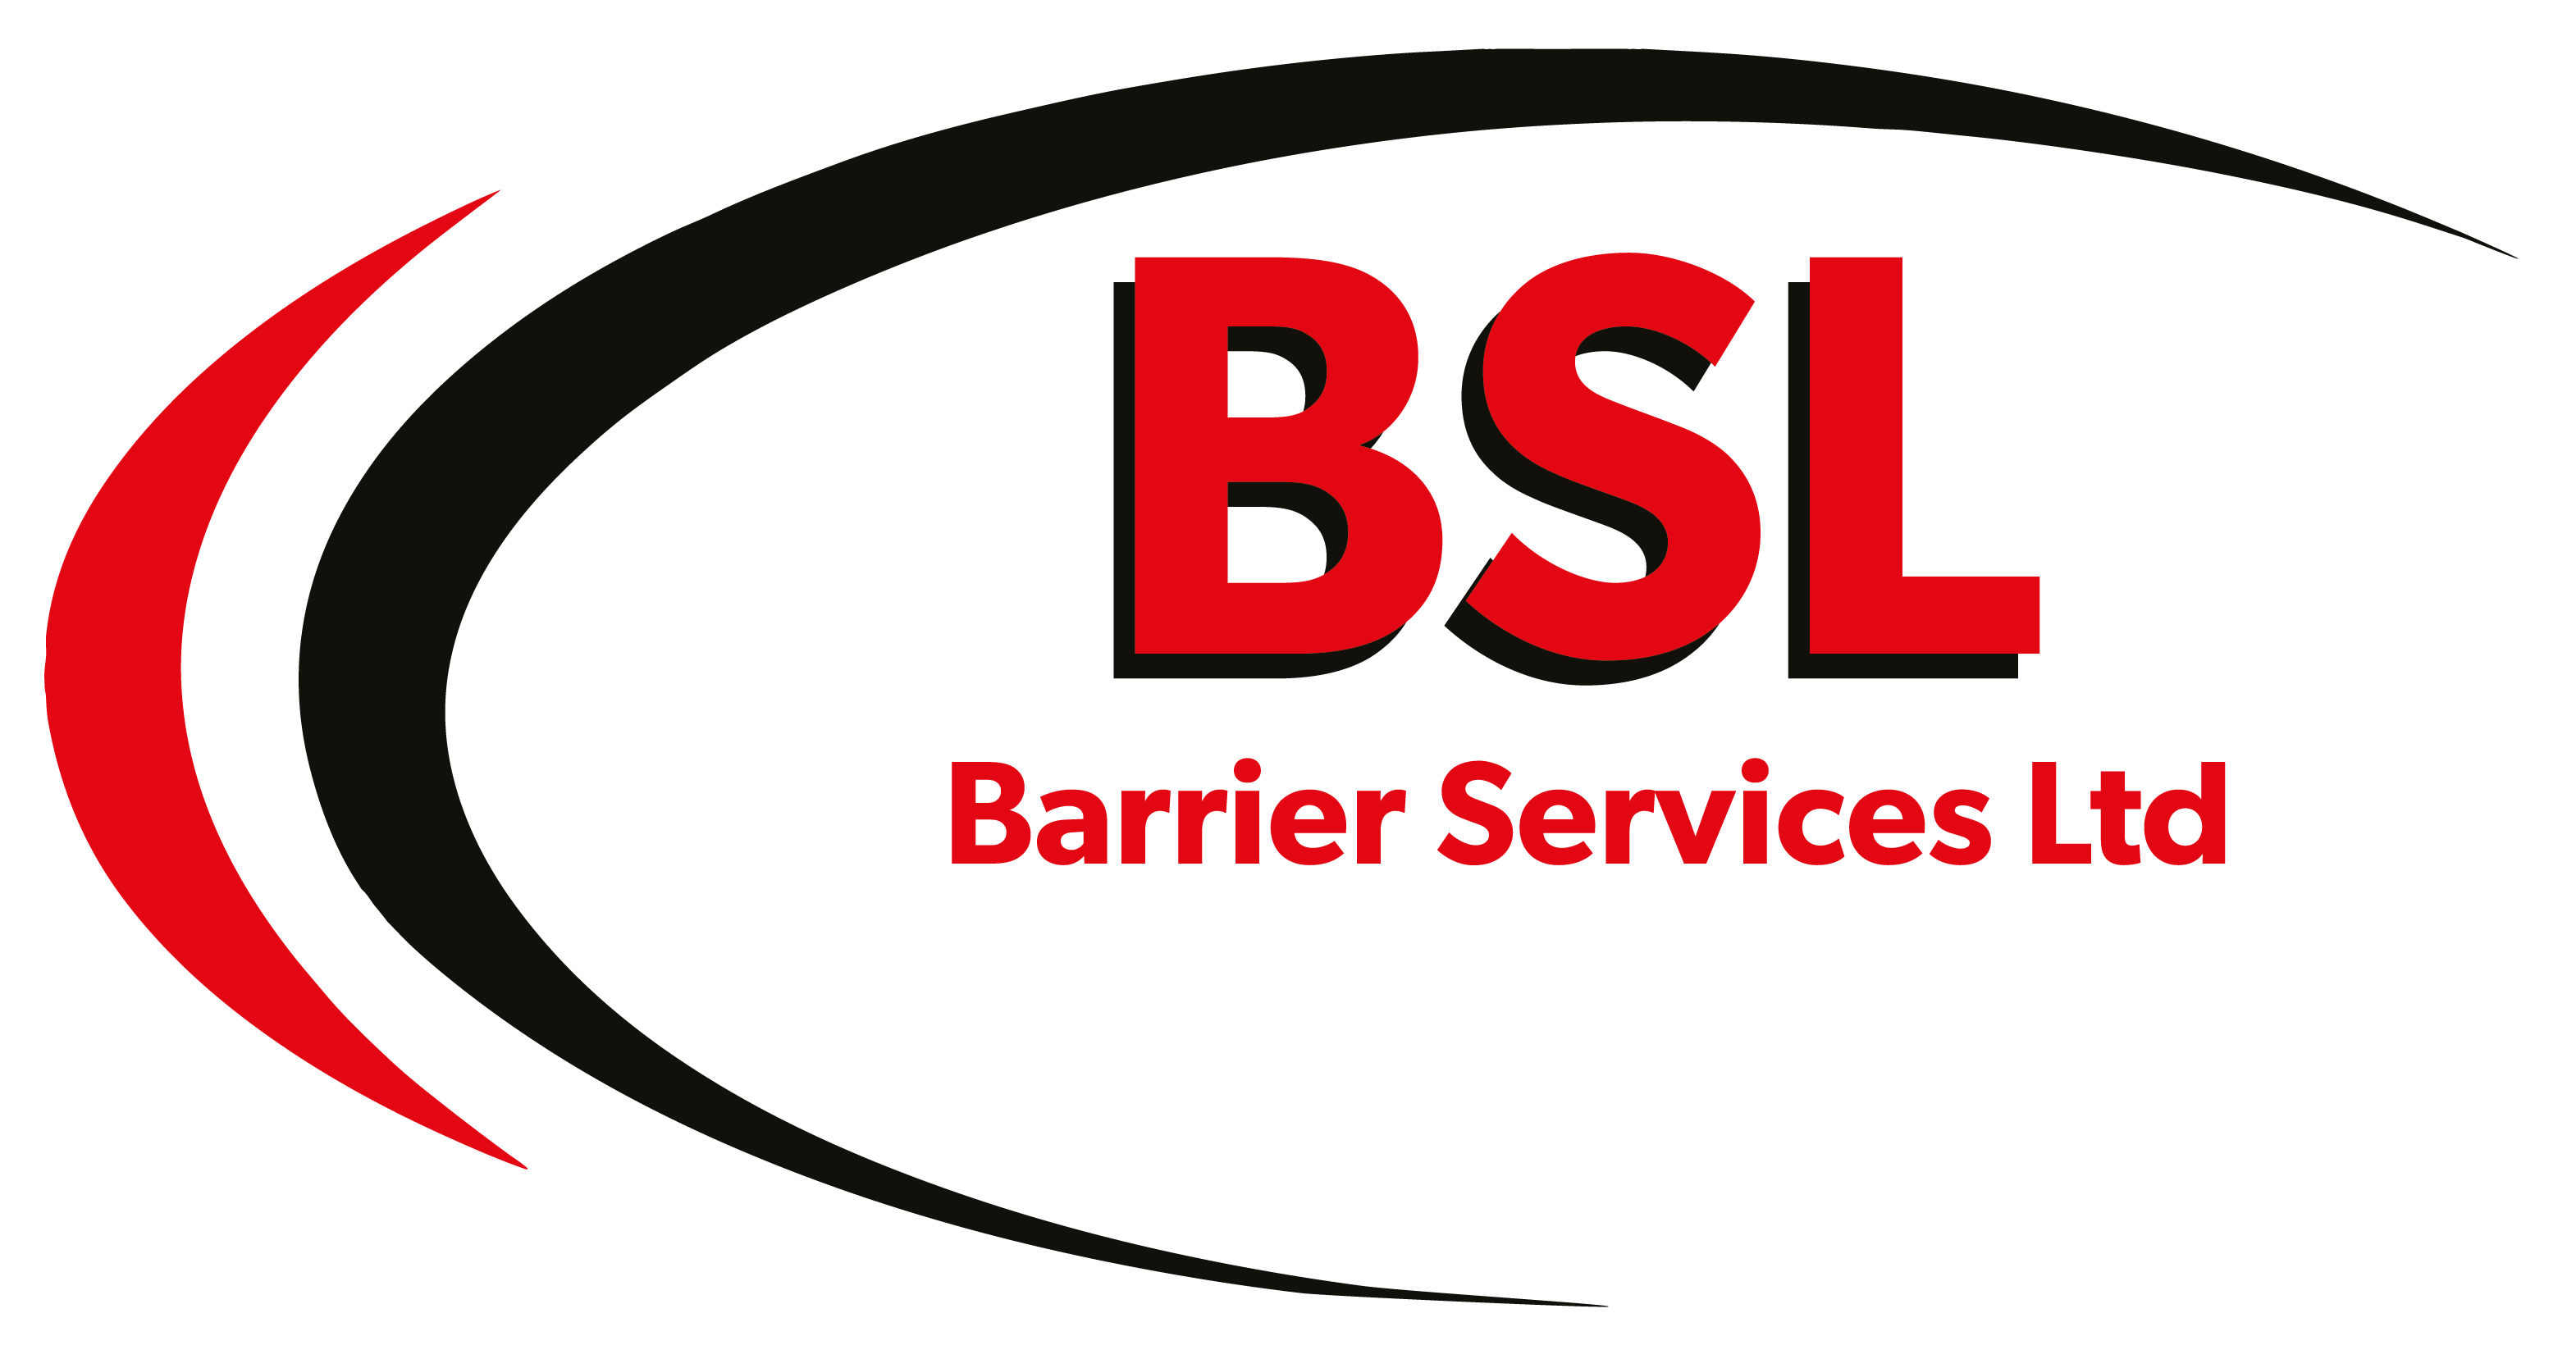 Barrier Services Ltd